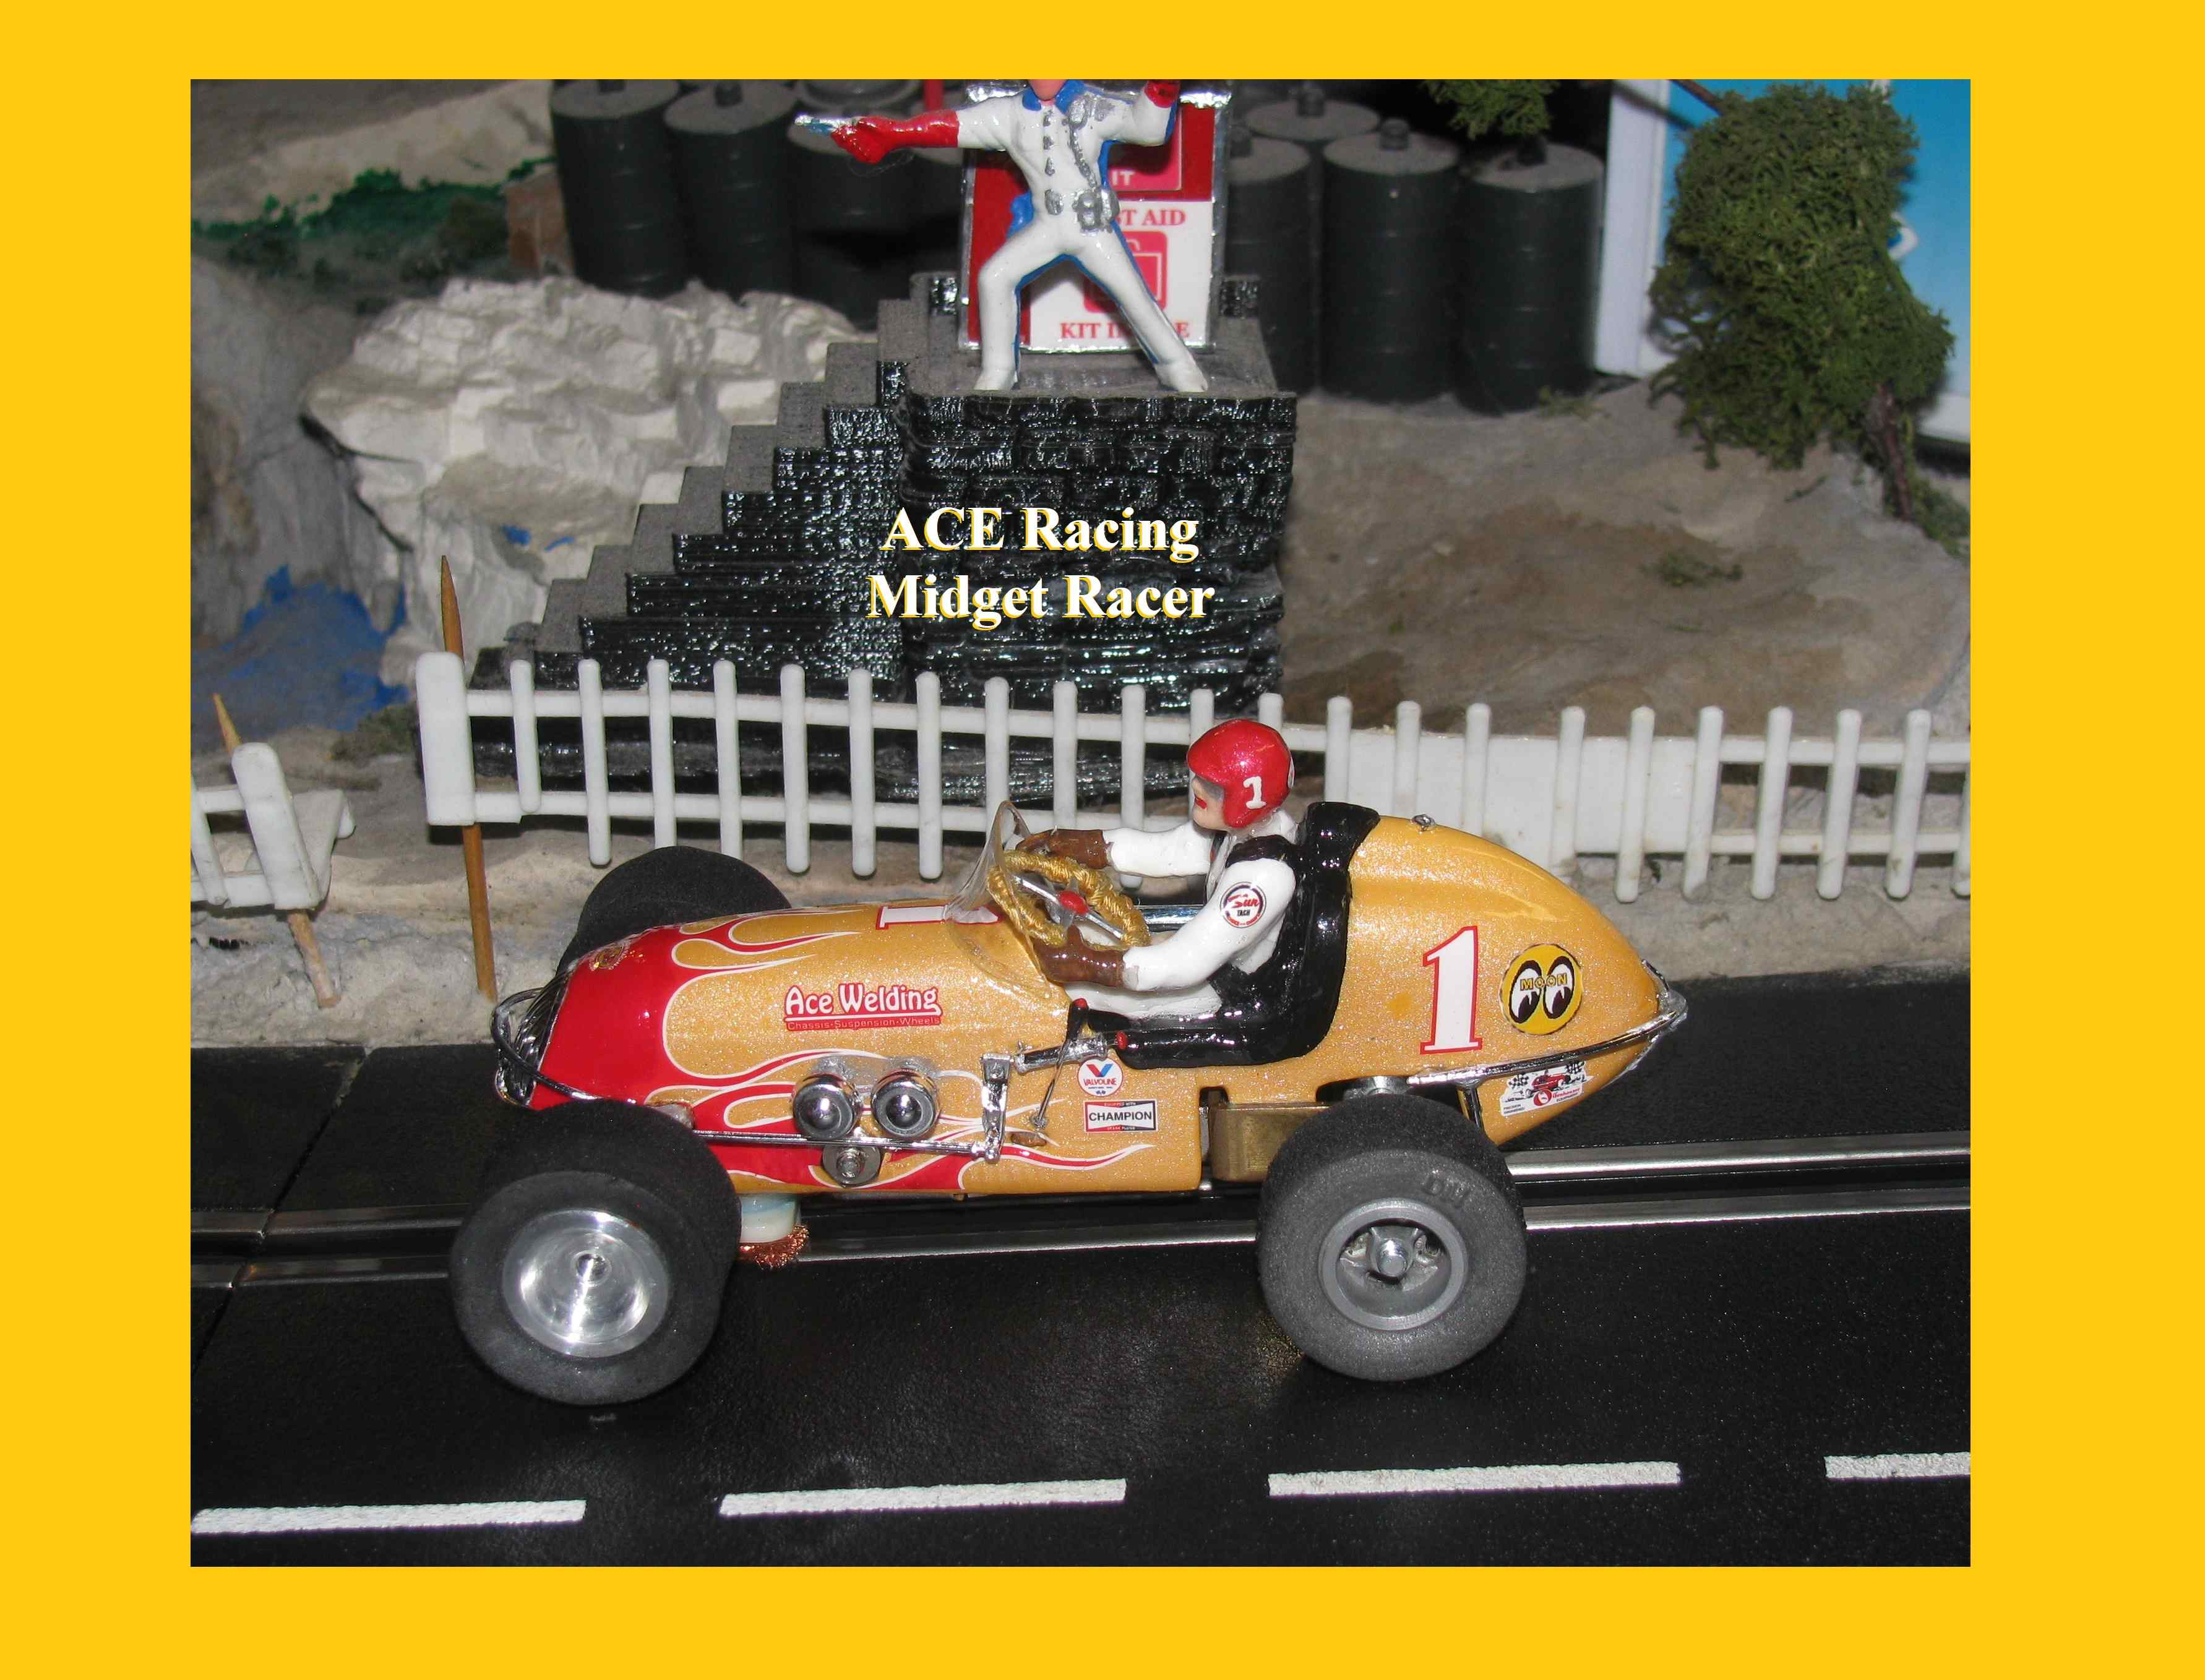 *SOLD* * FOR Charles E. ONLY $328 * *SALE $349.99, Reg, $449.99, SAVE $100* Revell Midget Racer ACE Racing Special 1:32 Scale in Yellow-Gold Pearlized Paint Car #1